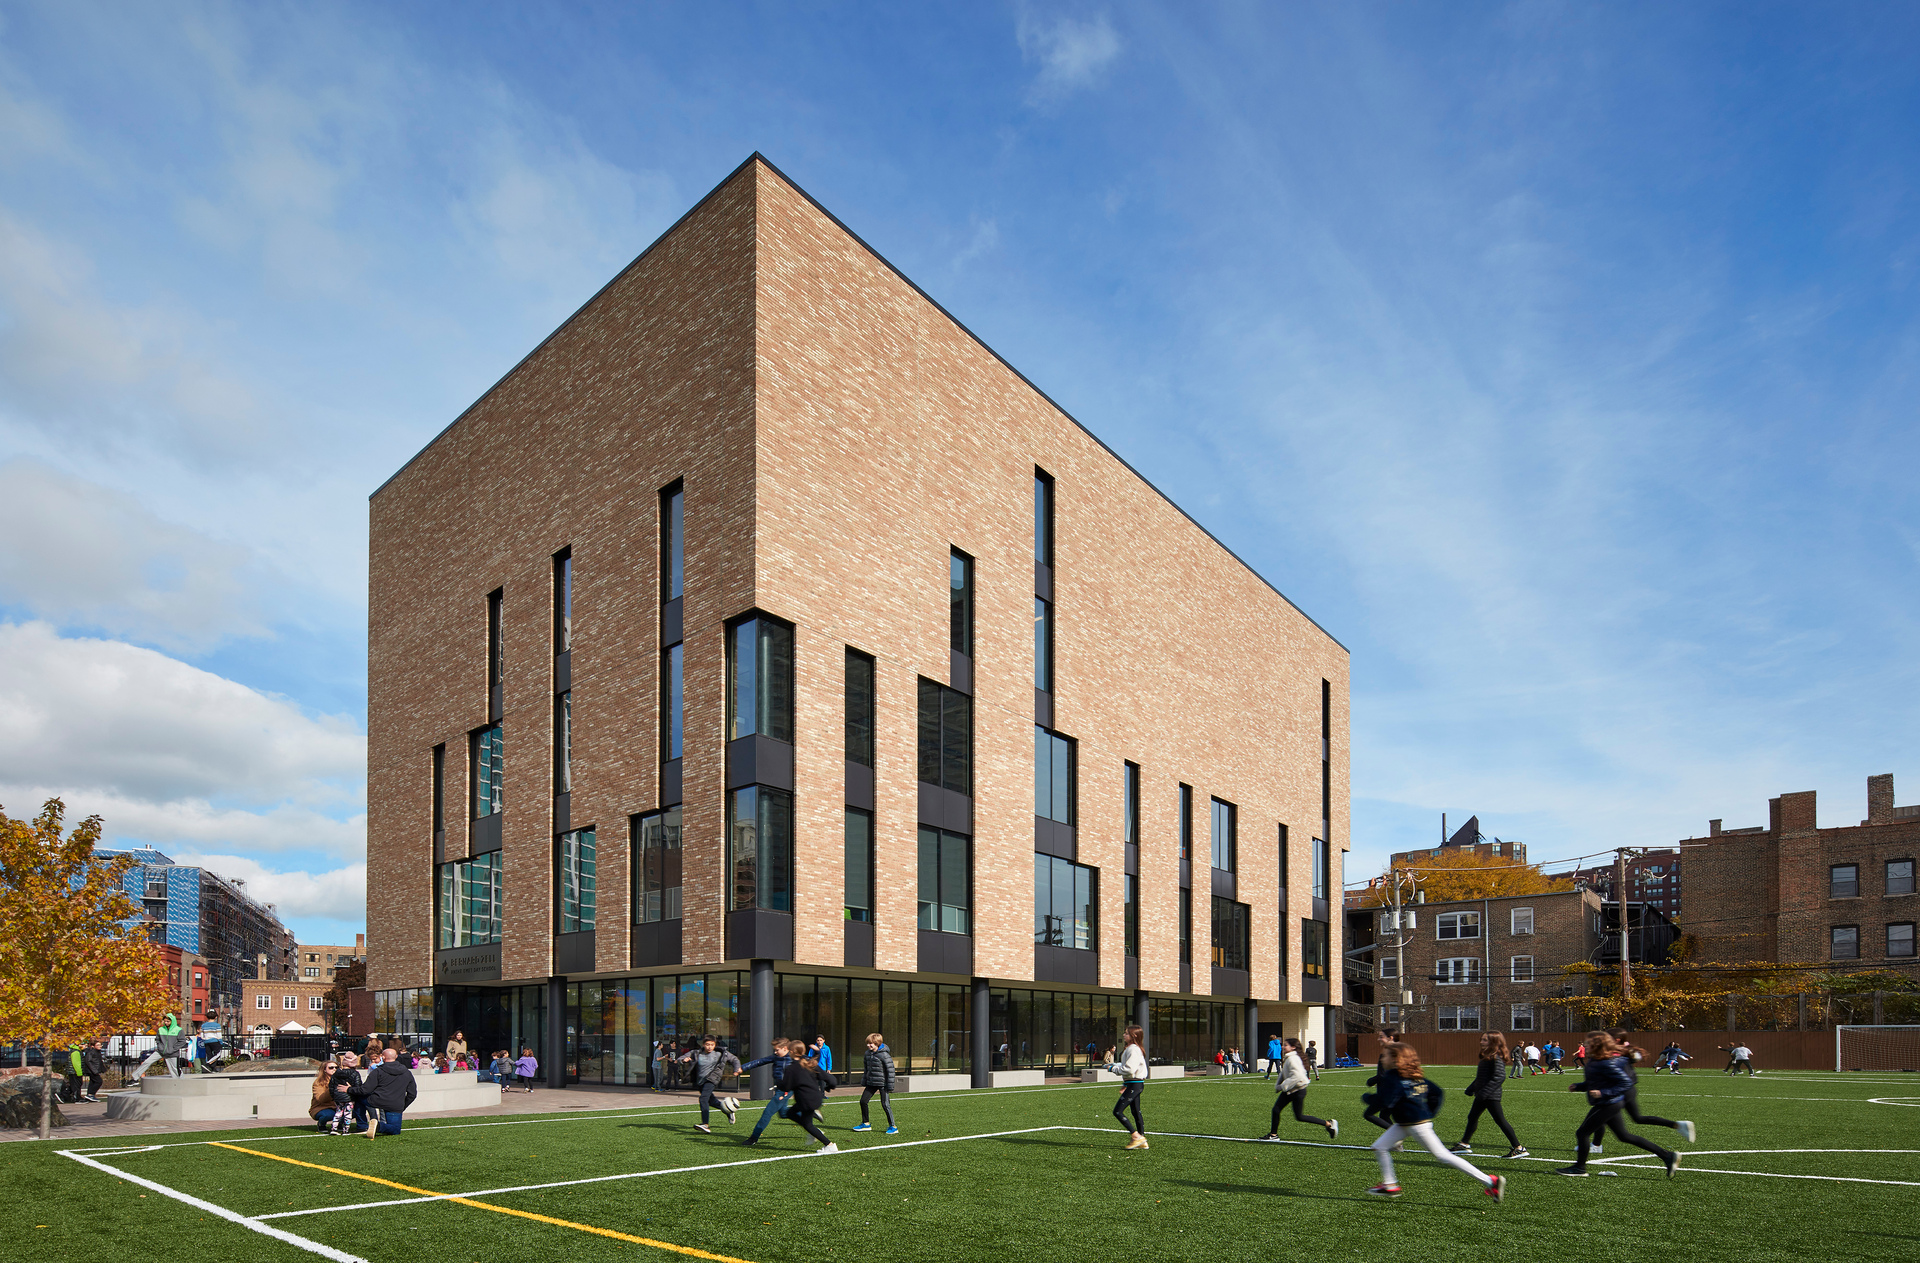 The Modular Belcrest 650 bricks by Belden Brick provide a sturdy exterior for the school building, while the large windows provide plenty of natural light.  Photo by Steve Hall, Hall + Merrick Photographers